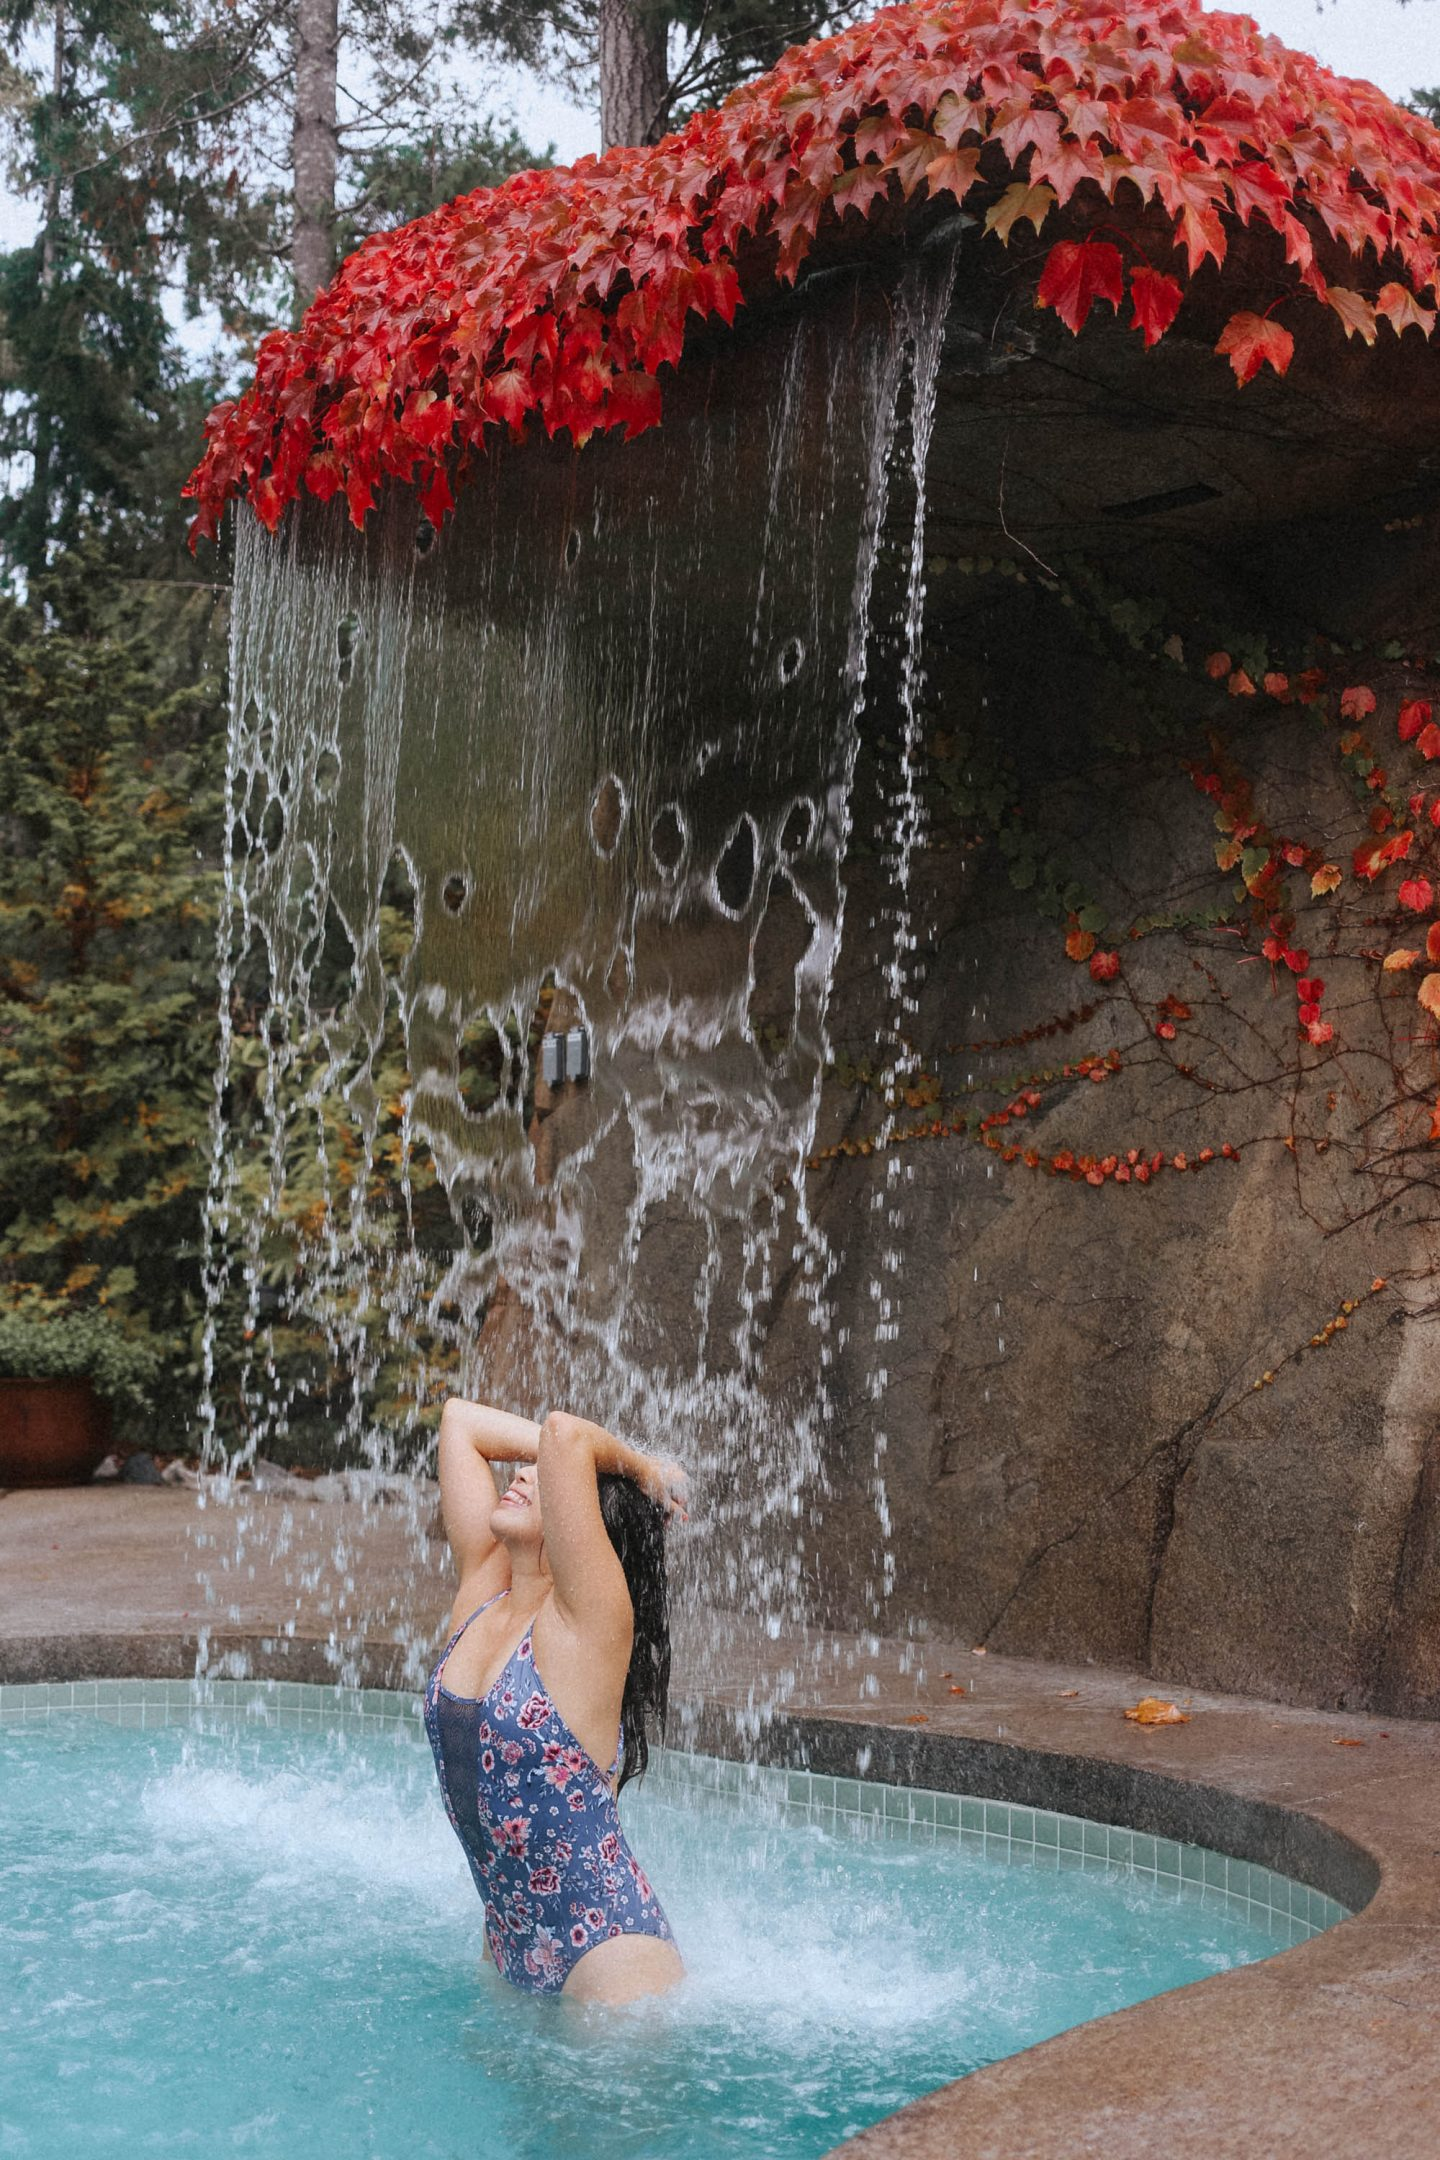 The hot tub with a rainfall feature at The Spa at the Painted Boat Resort on the Sunshine Coast BC